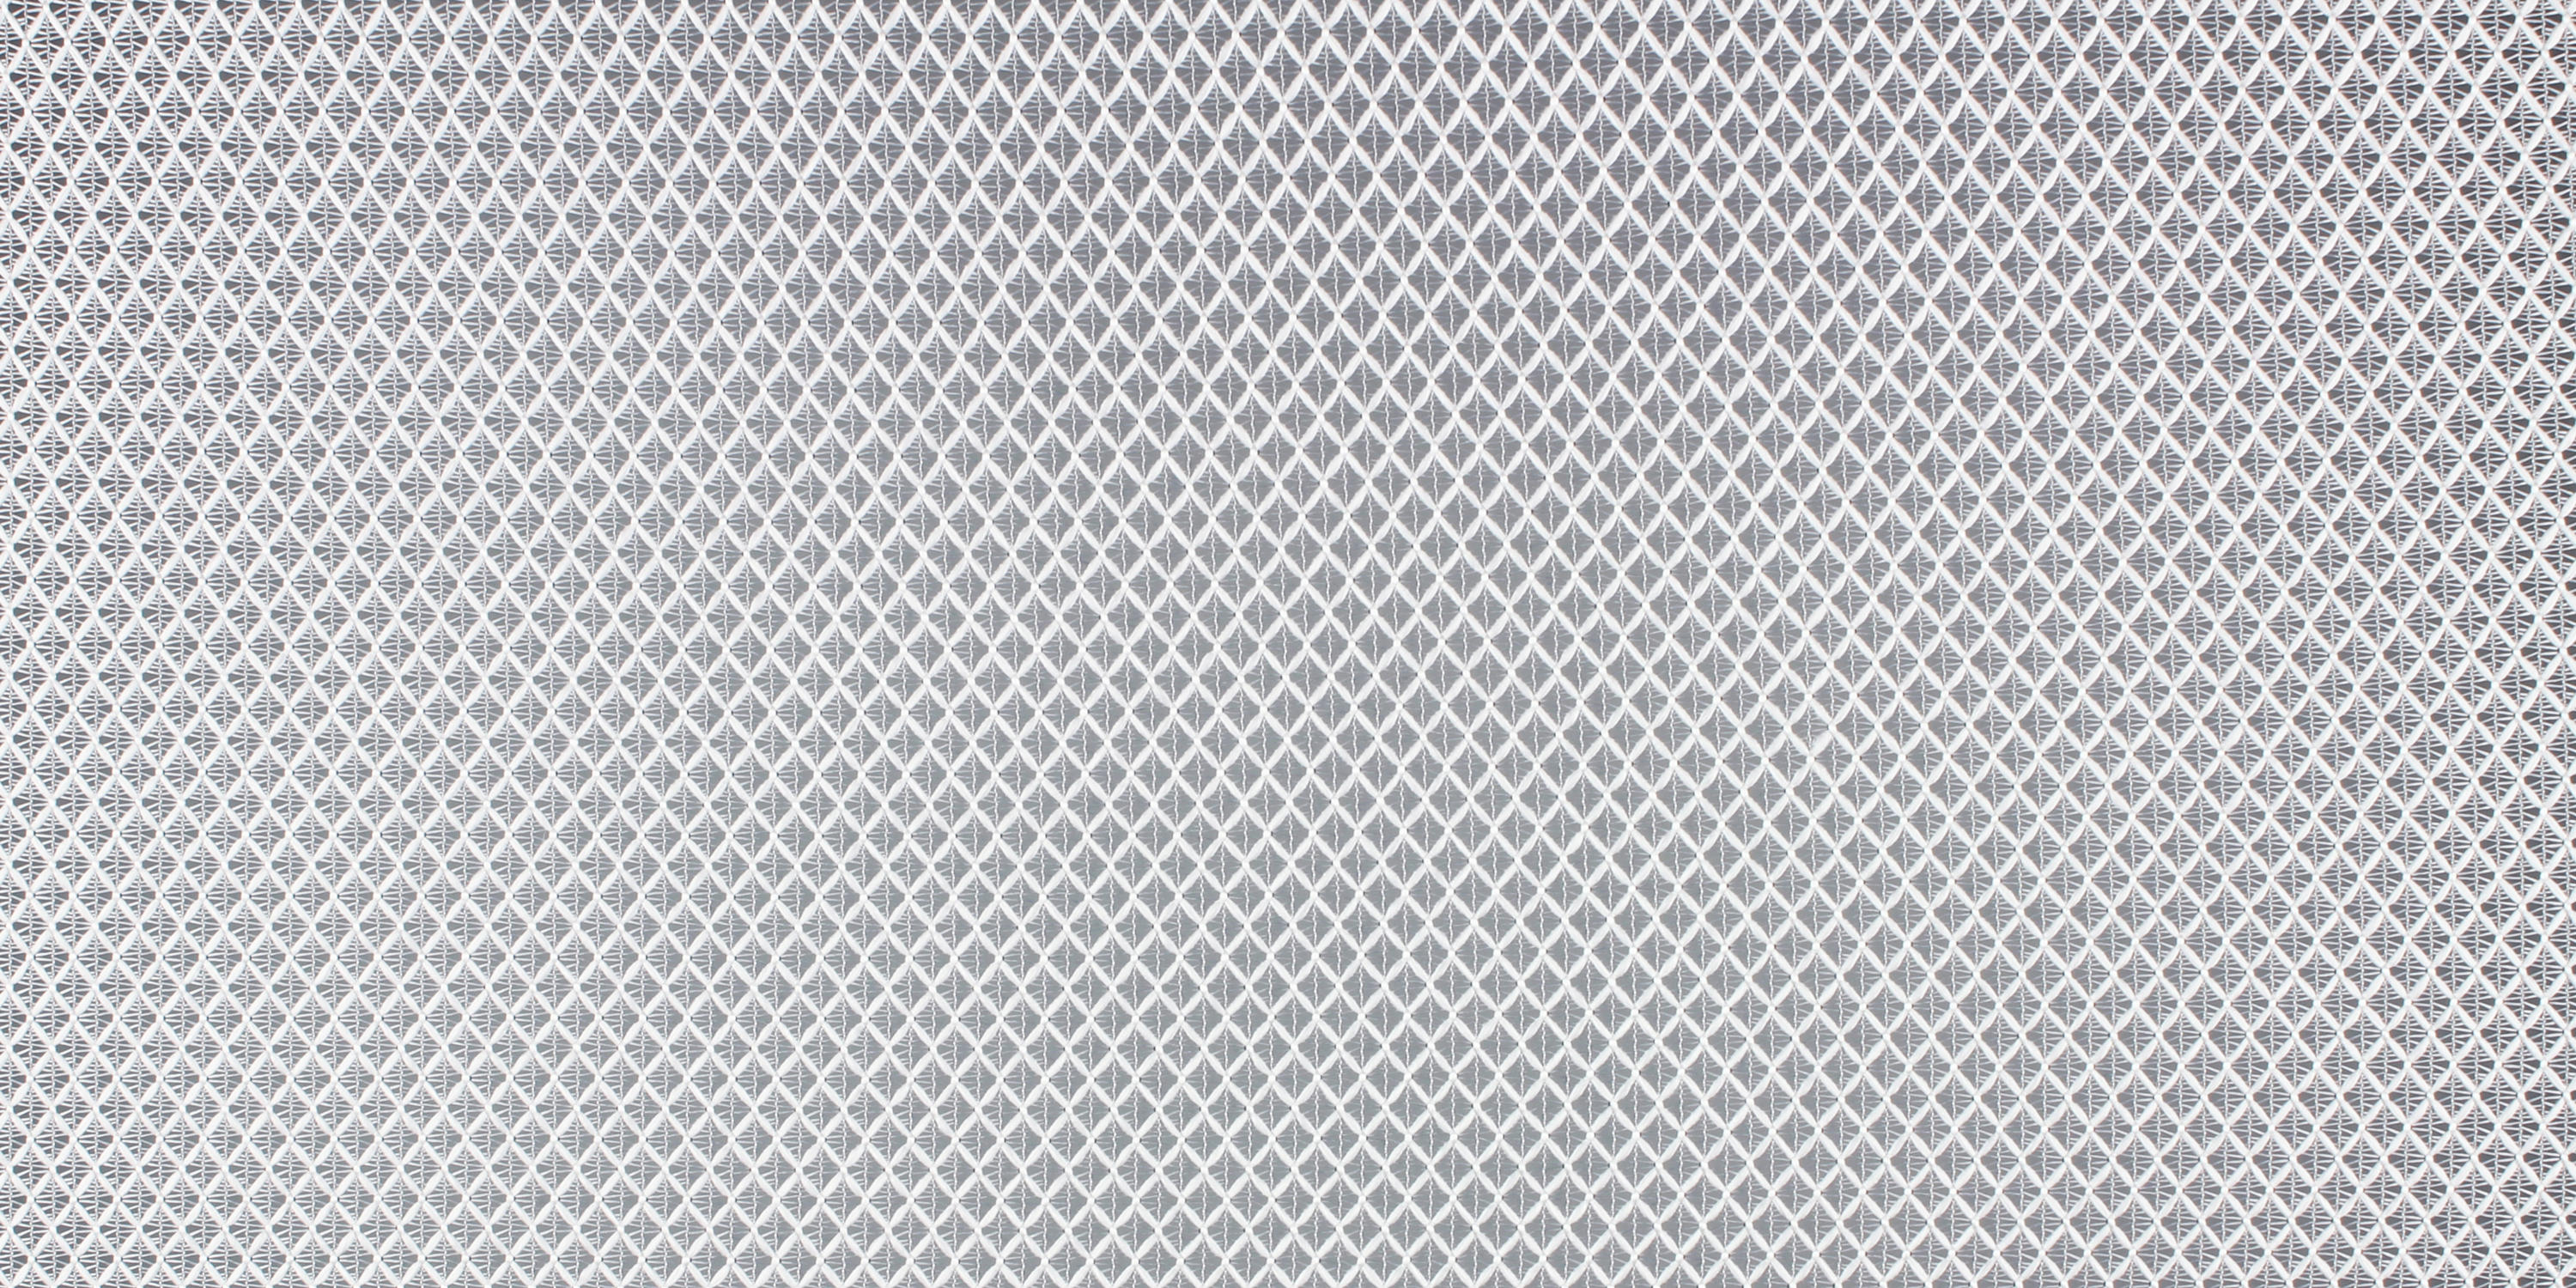 ALU NET - 101 - Curtain fabrics from Création Baumann | Architonic for Net Curtains Texture  45ifm